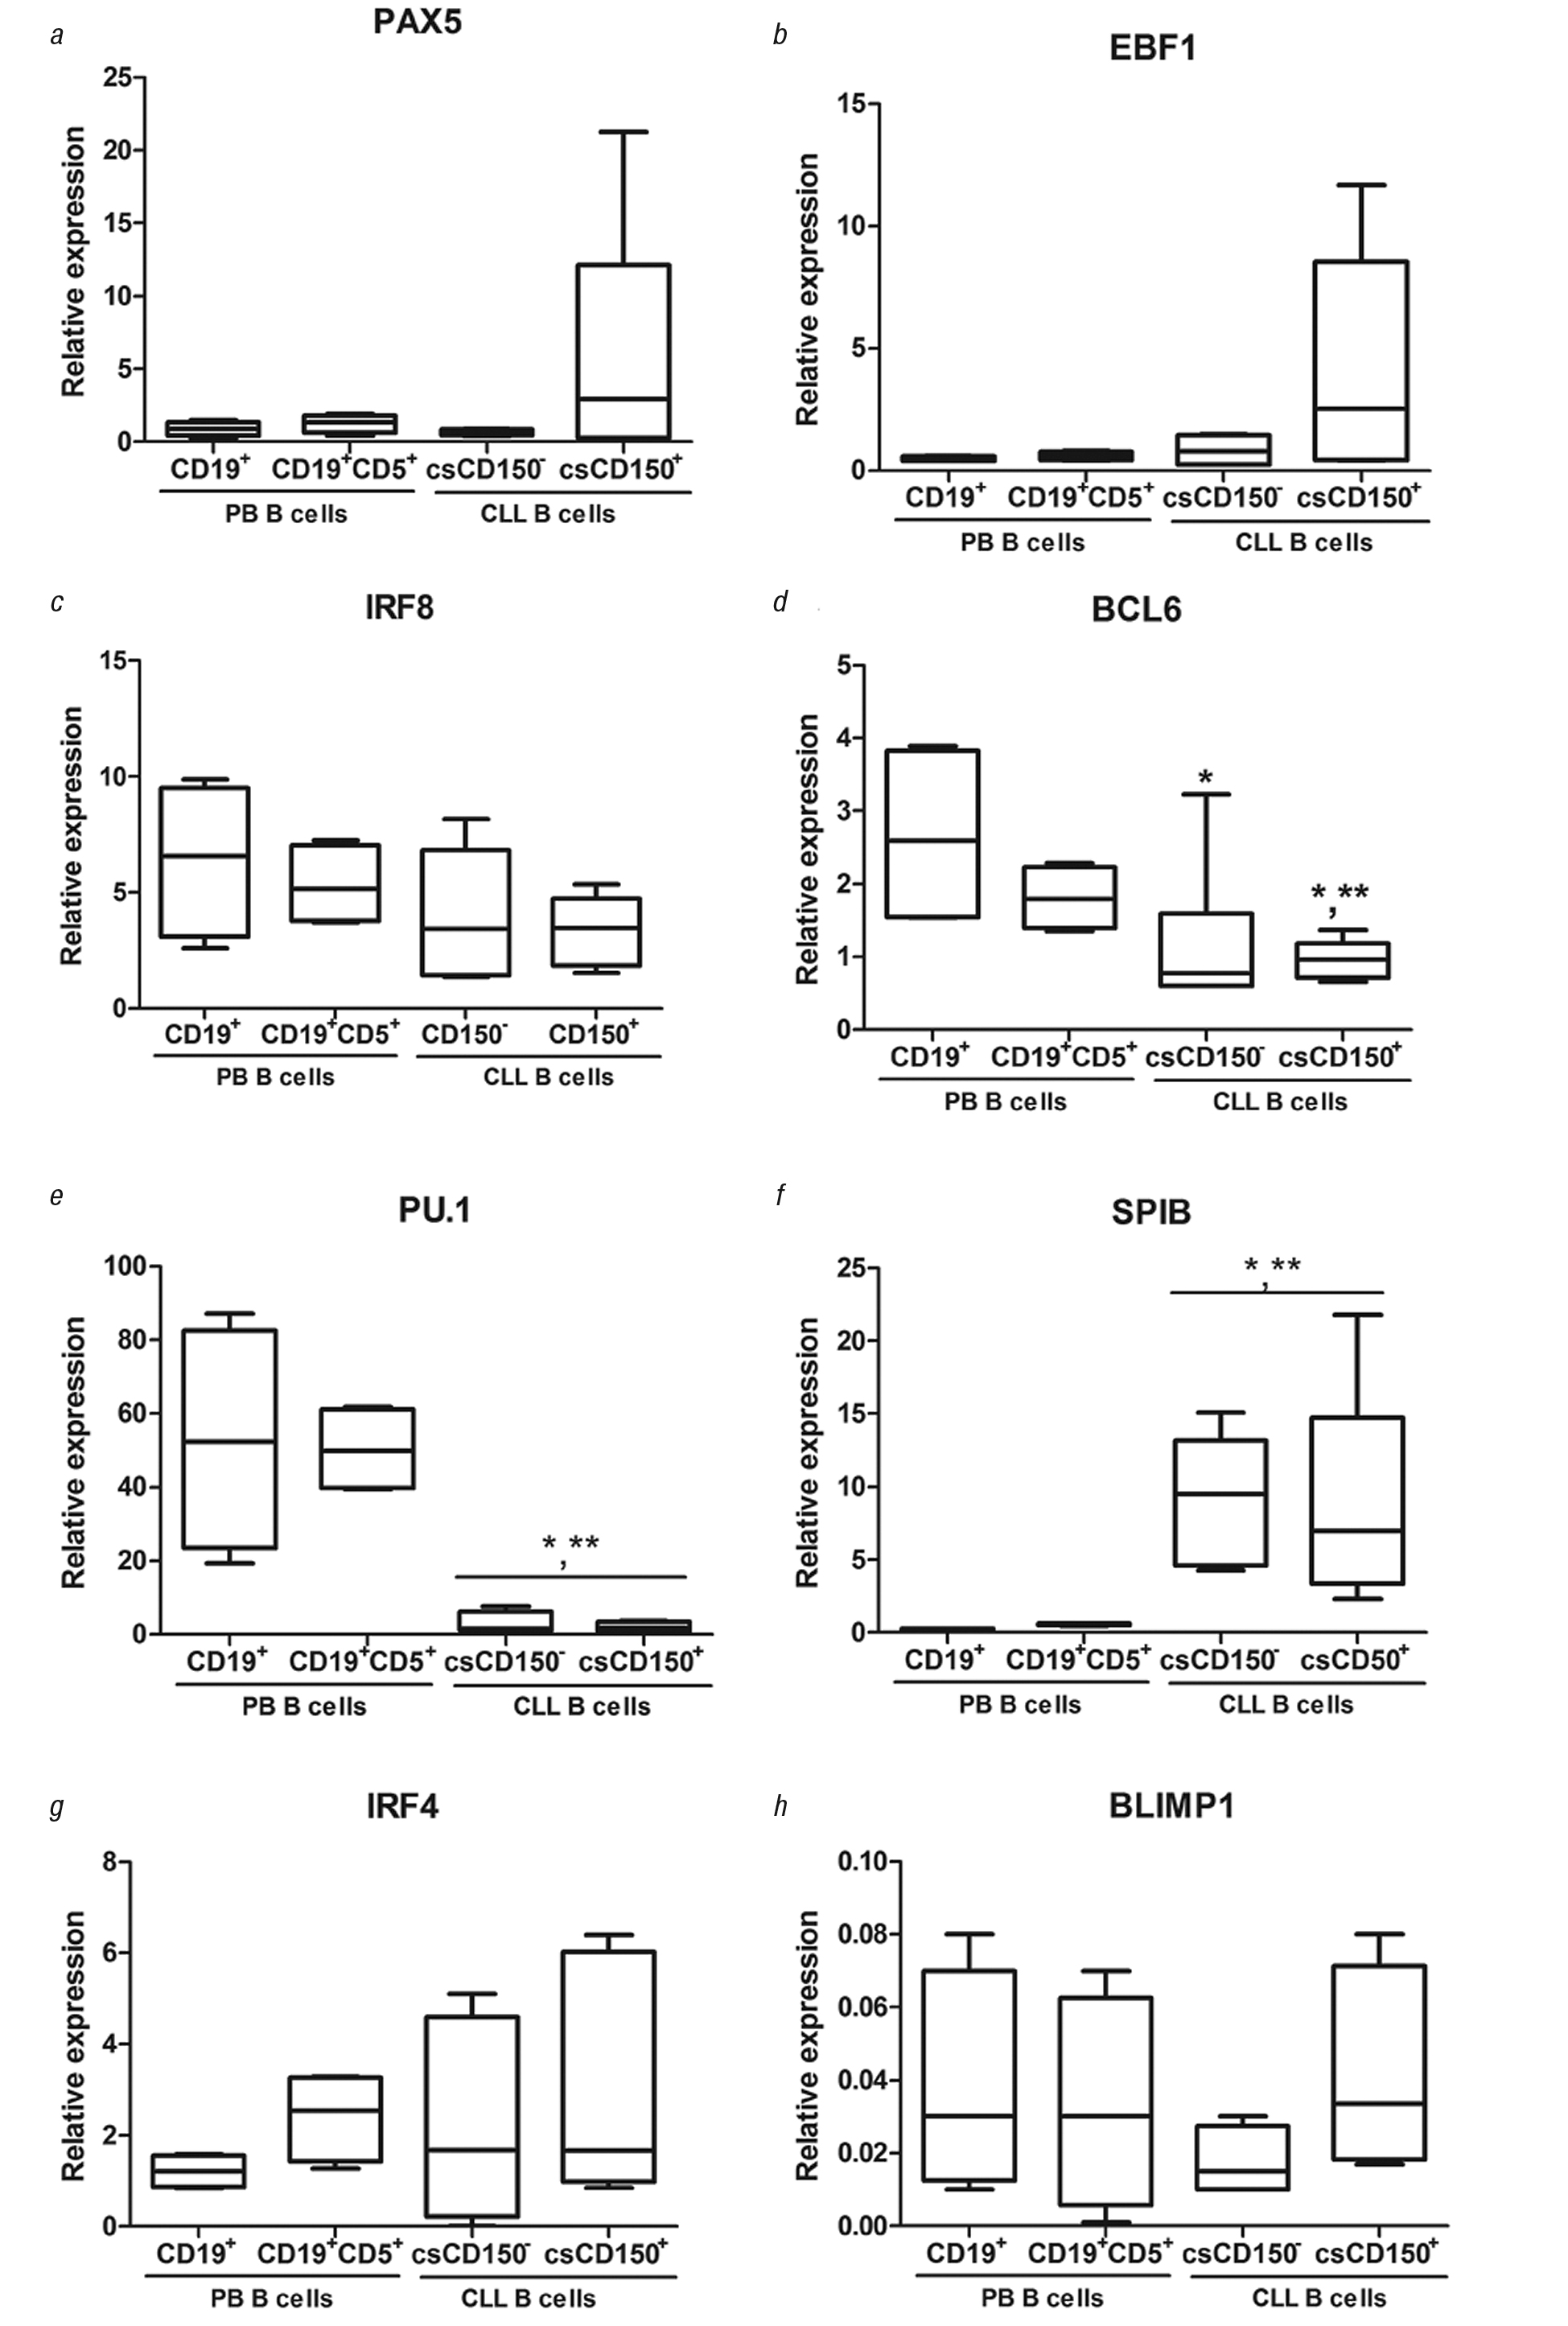 1123131 CD150 and CD180 are involved in regulation of transcription factors expression in chronic lymphocytic leukemia cells